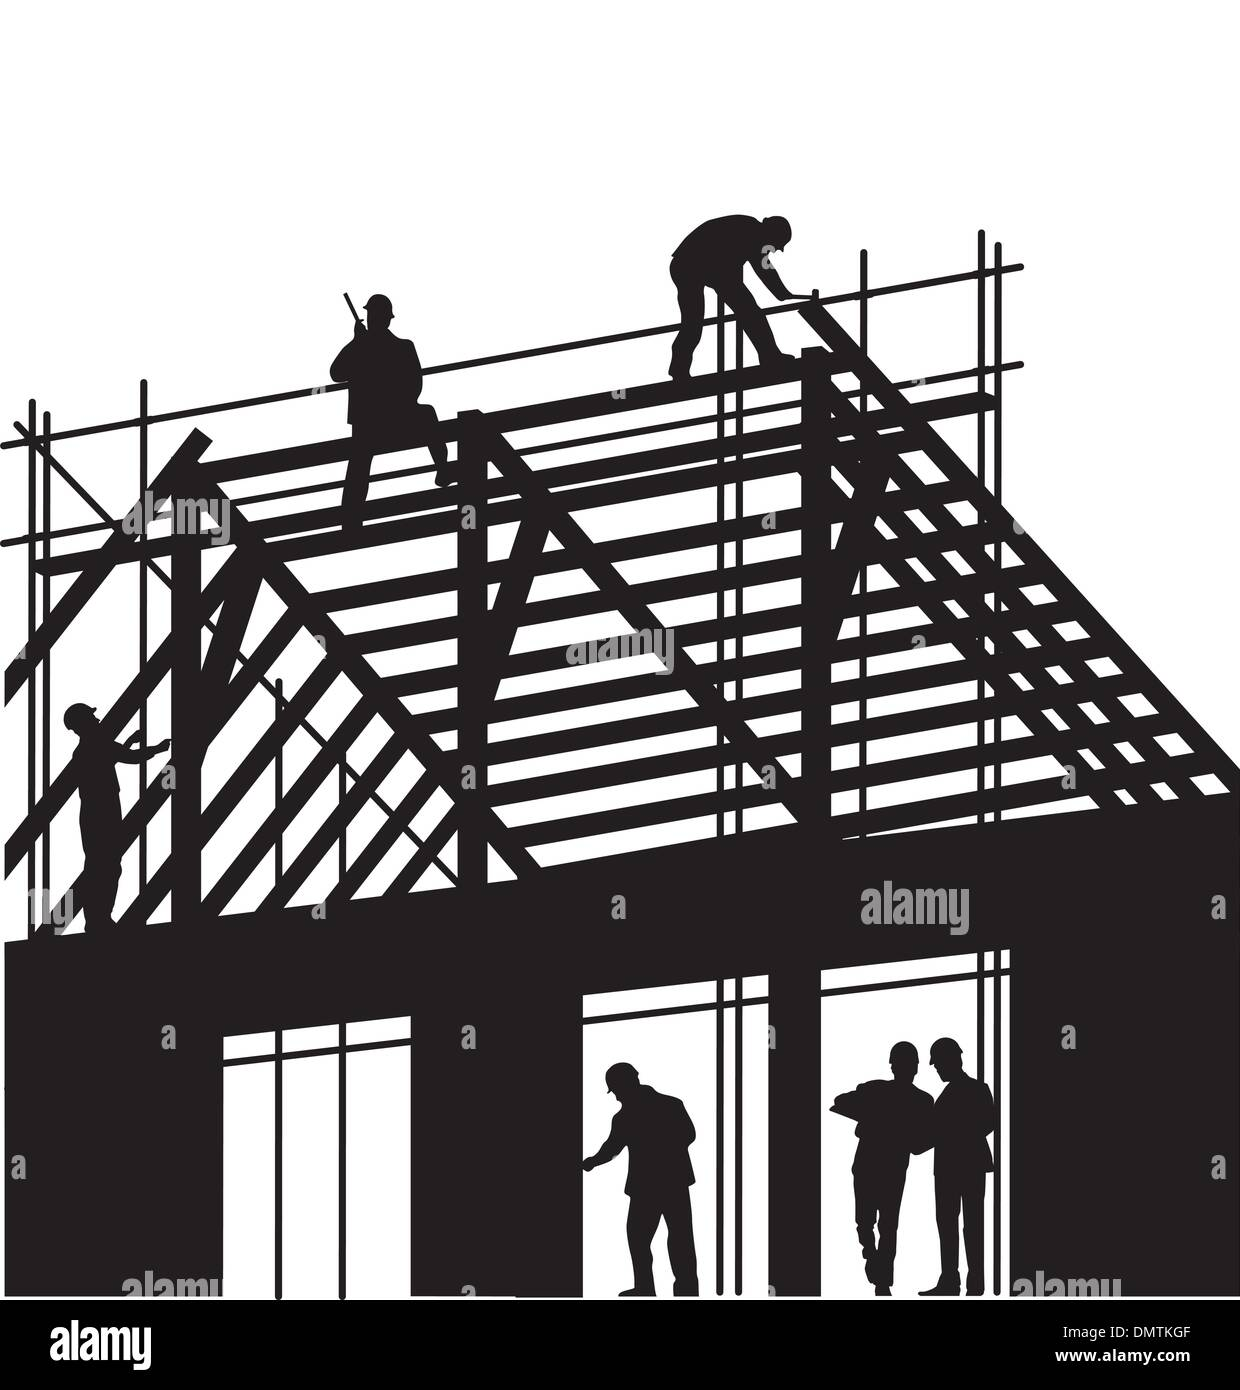 Roofers and Carpenter - Stock Vector